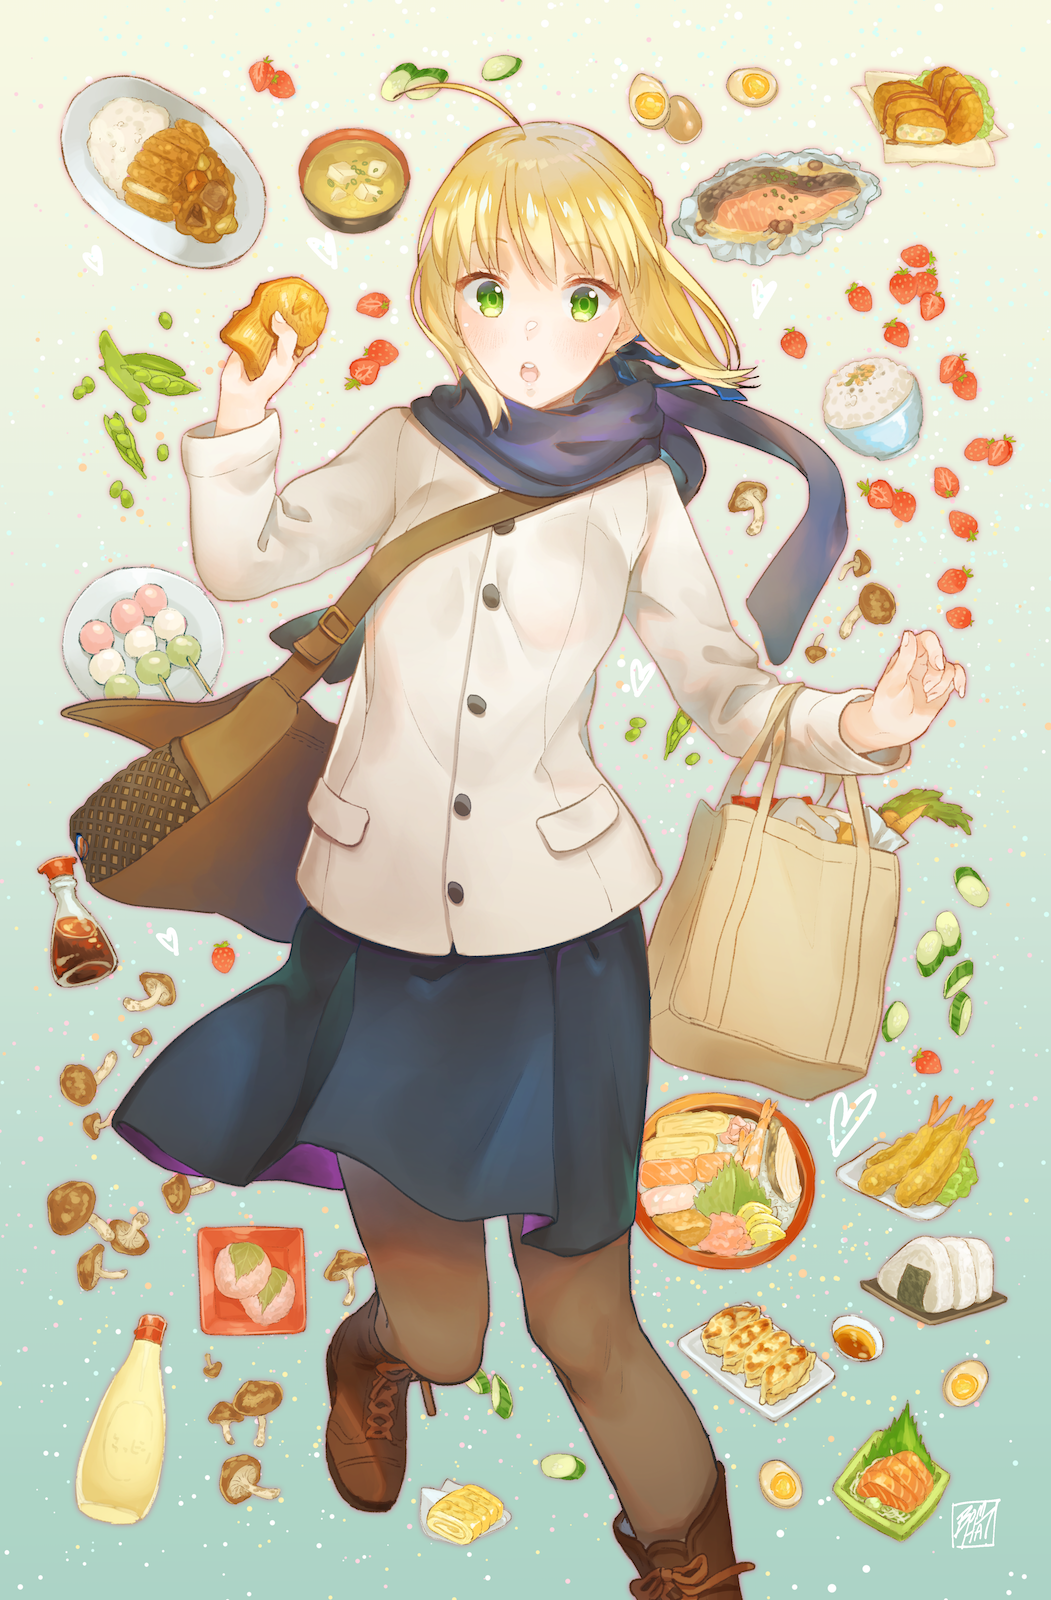 Anime 1051x1600 Fate Series Fate/Stay Night anime girls Saber Arturia Pendragon anime girls eating 2D food thighs pantyhose blond hair long hair ahoge brown boots small boobs green eyes fan art open mouth